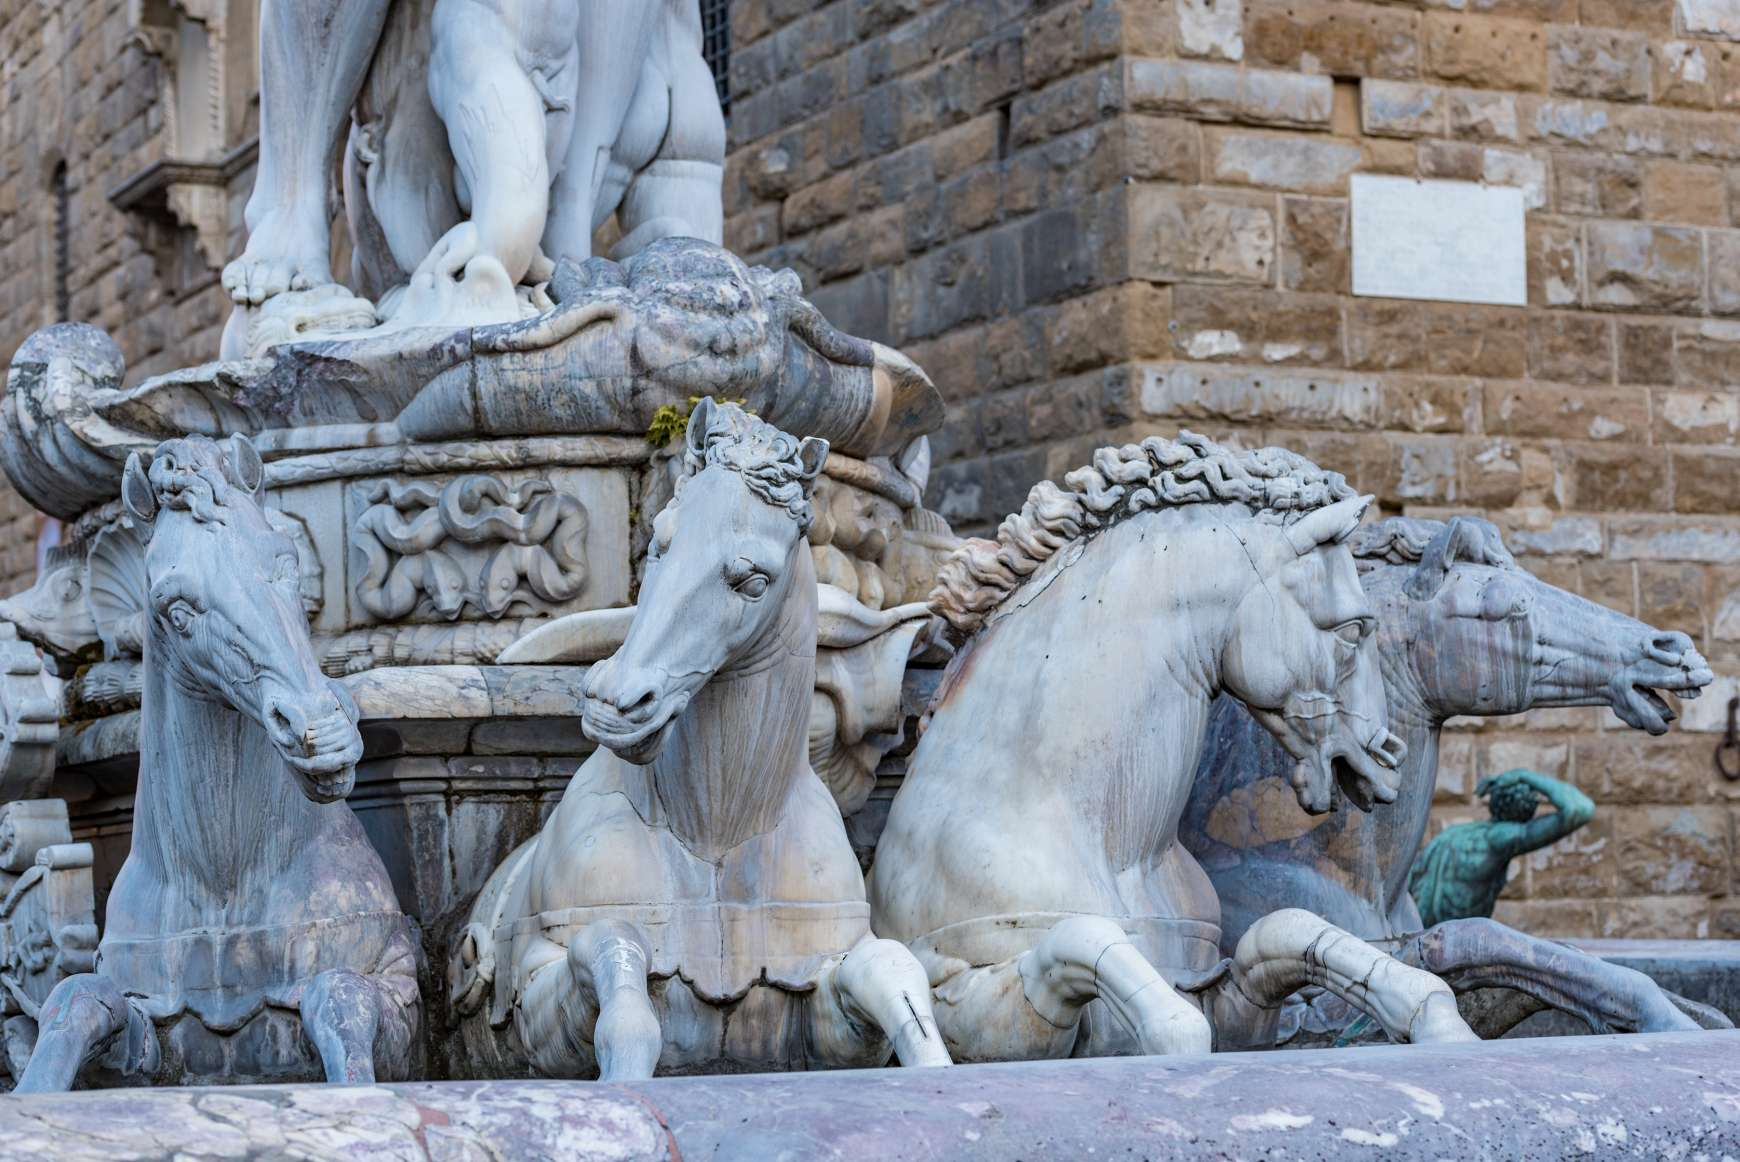 Horses carrying Neptune in fountain at Piazza della Signoria in Florence